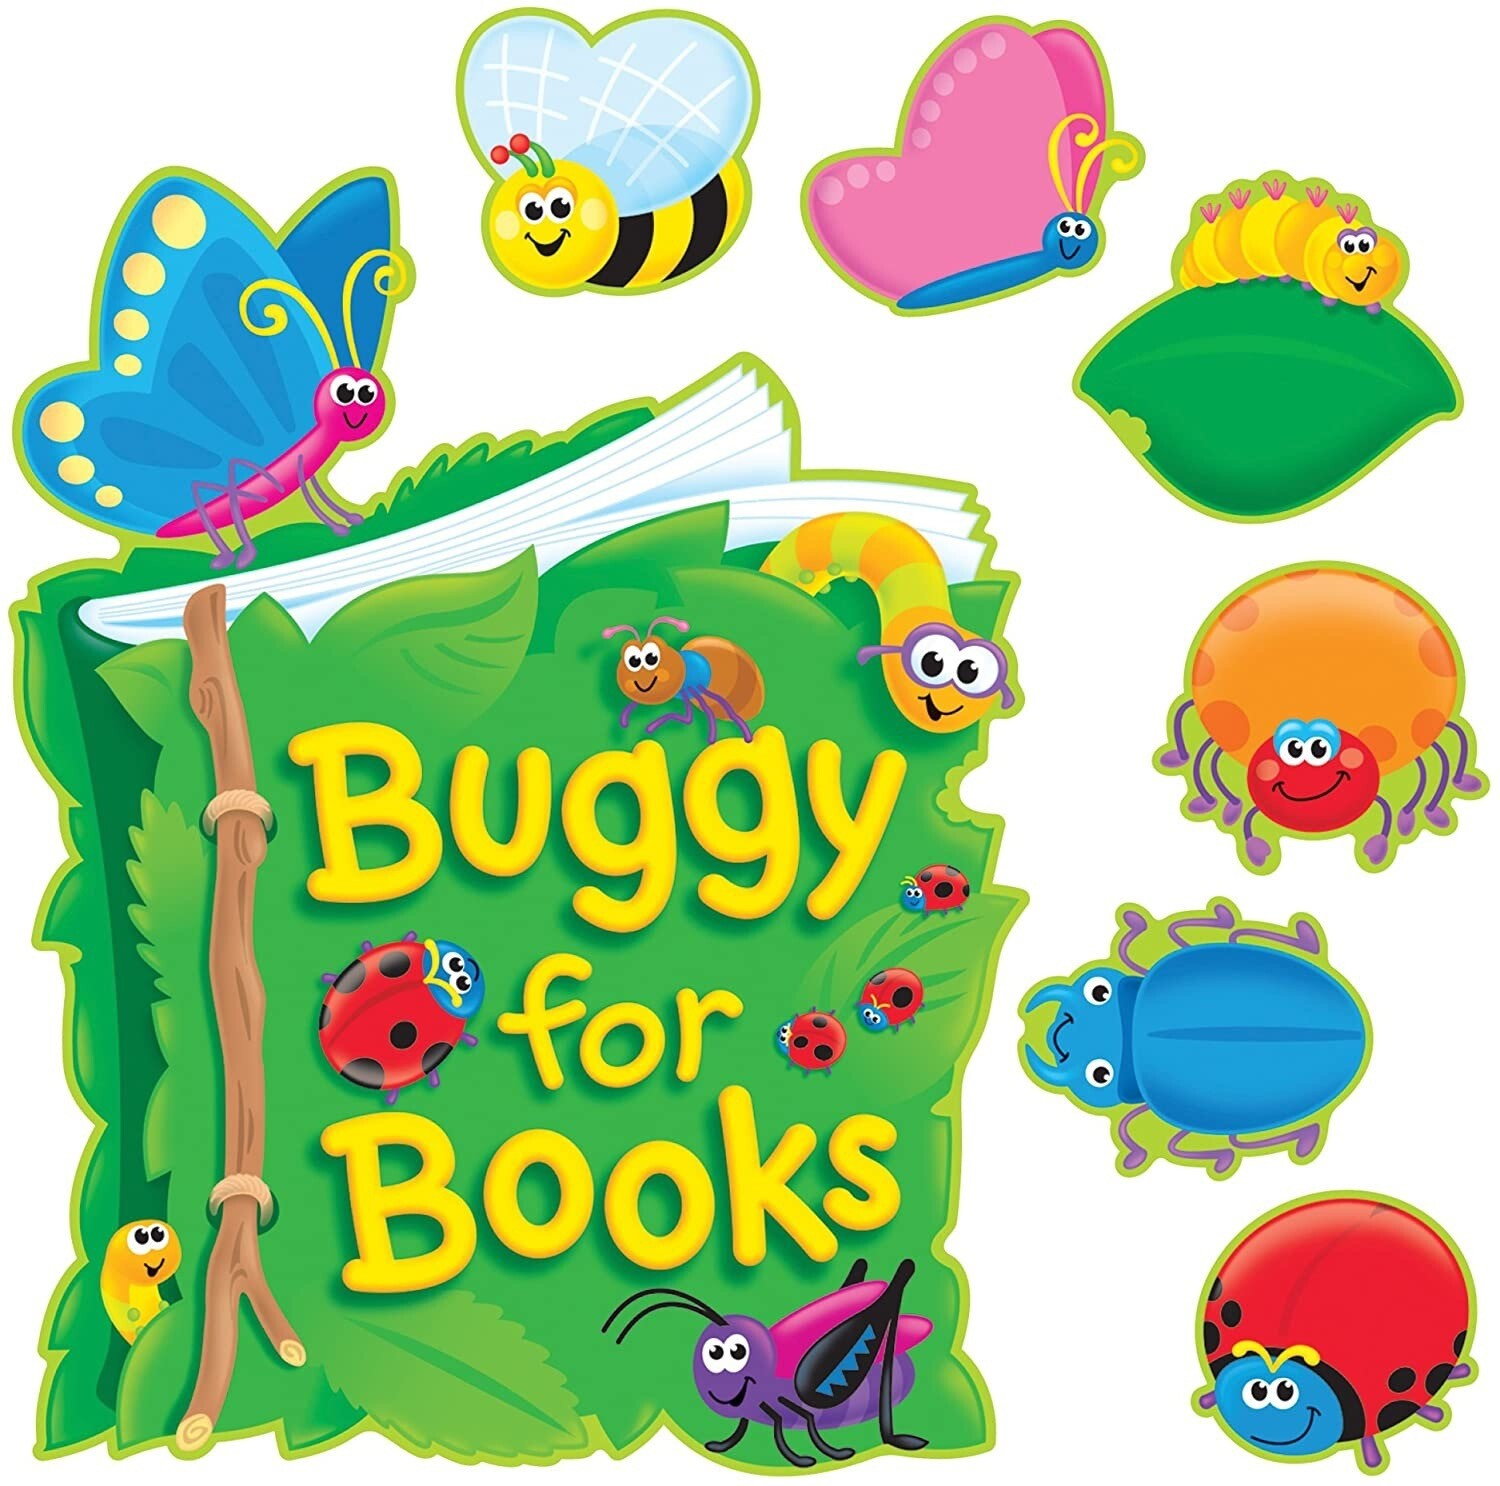 Buggy For Books - Set